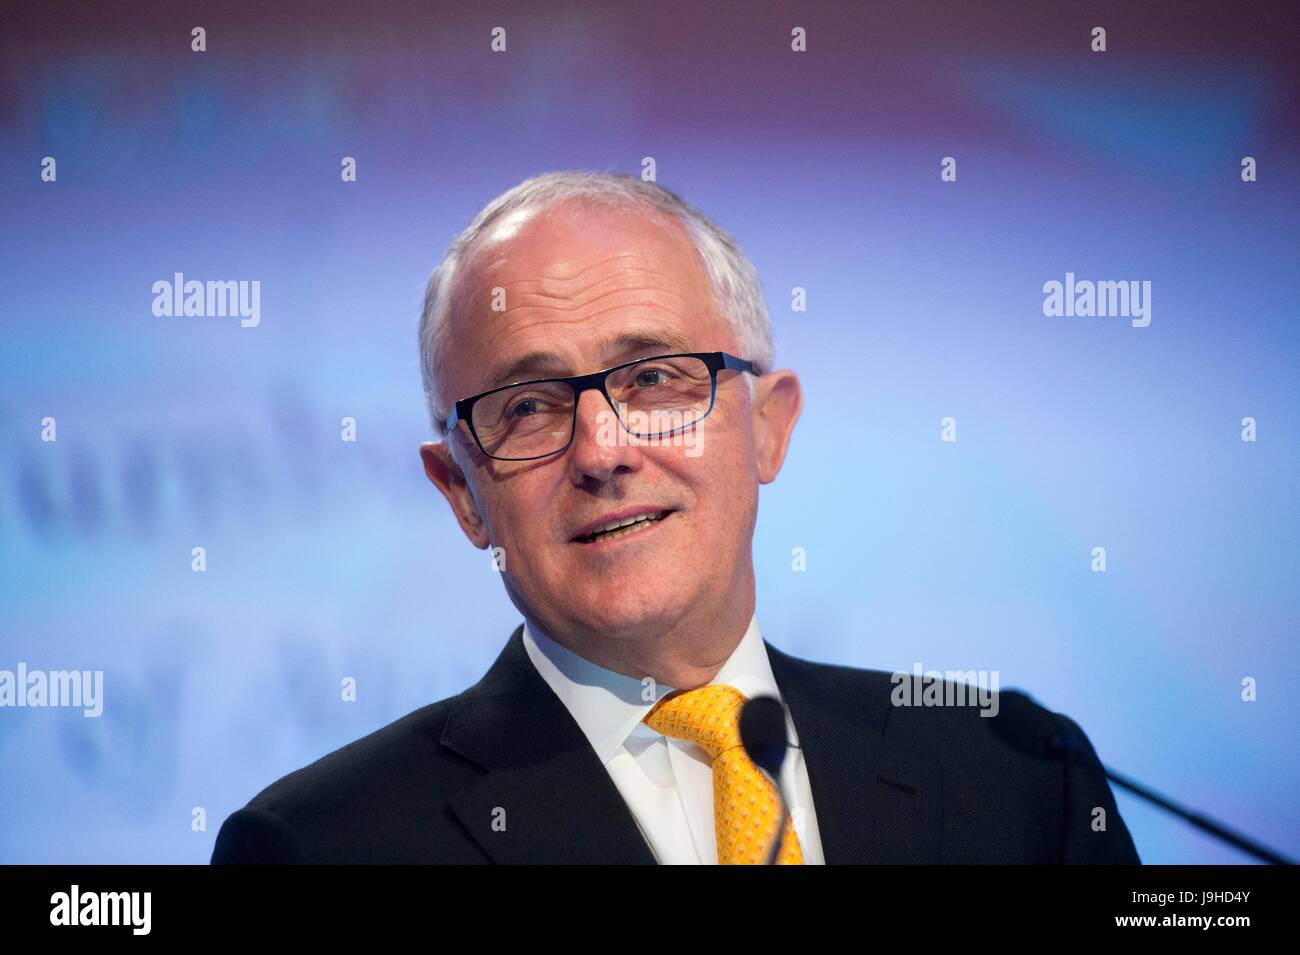 Australian Prime Minister Malcolm Turnbull delivers the key-note address to kick off the IISS Shangri-La Dialogue - Stock Image